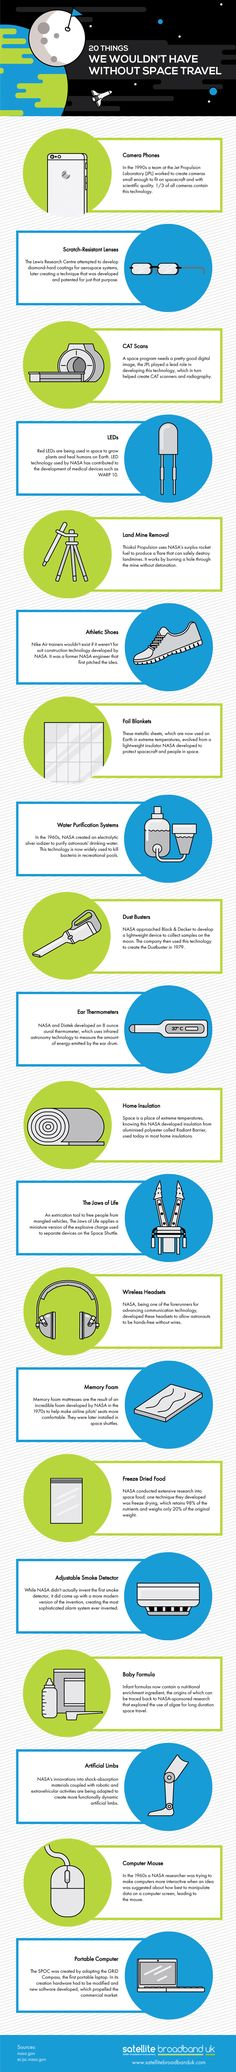 20 Things We Wouldn't Have Without Space Travel #Infographic #Space #Travel